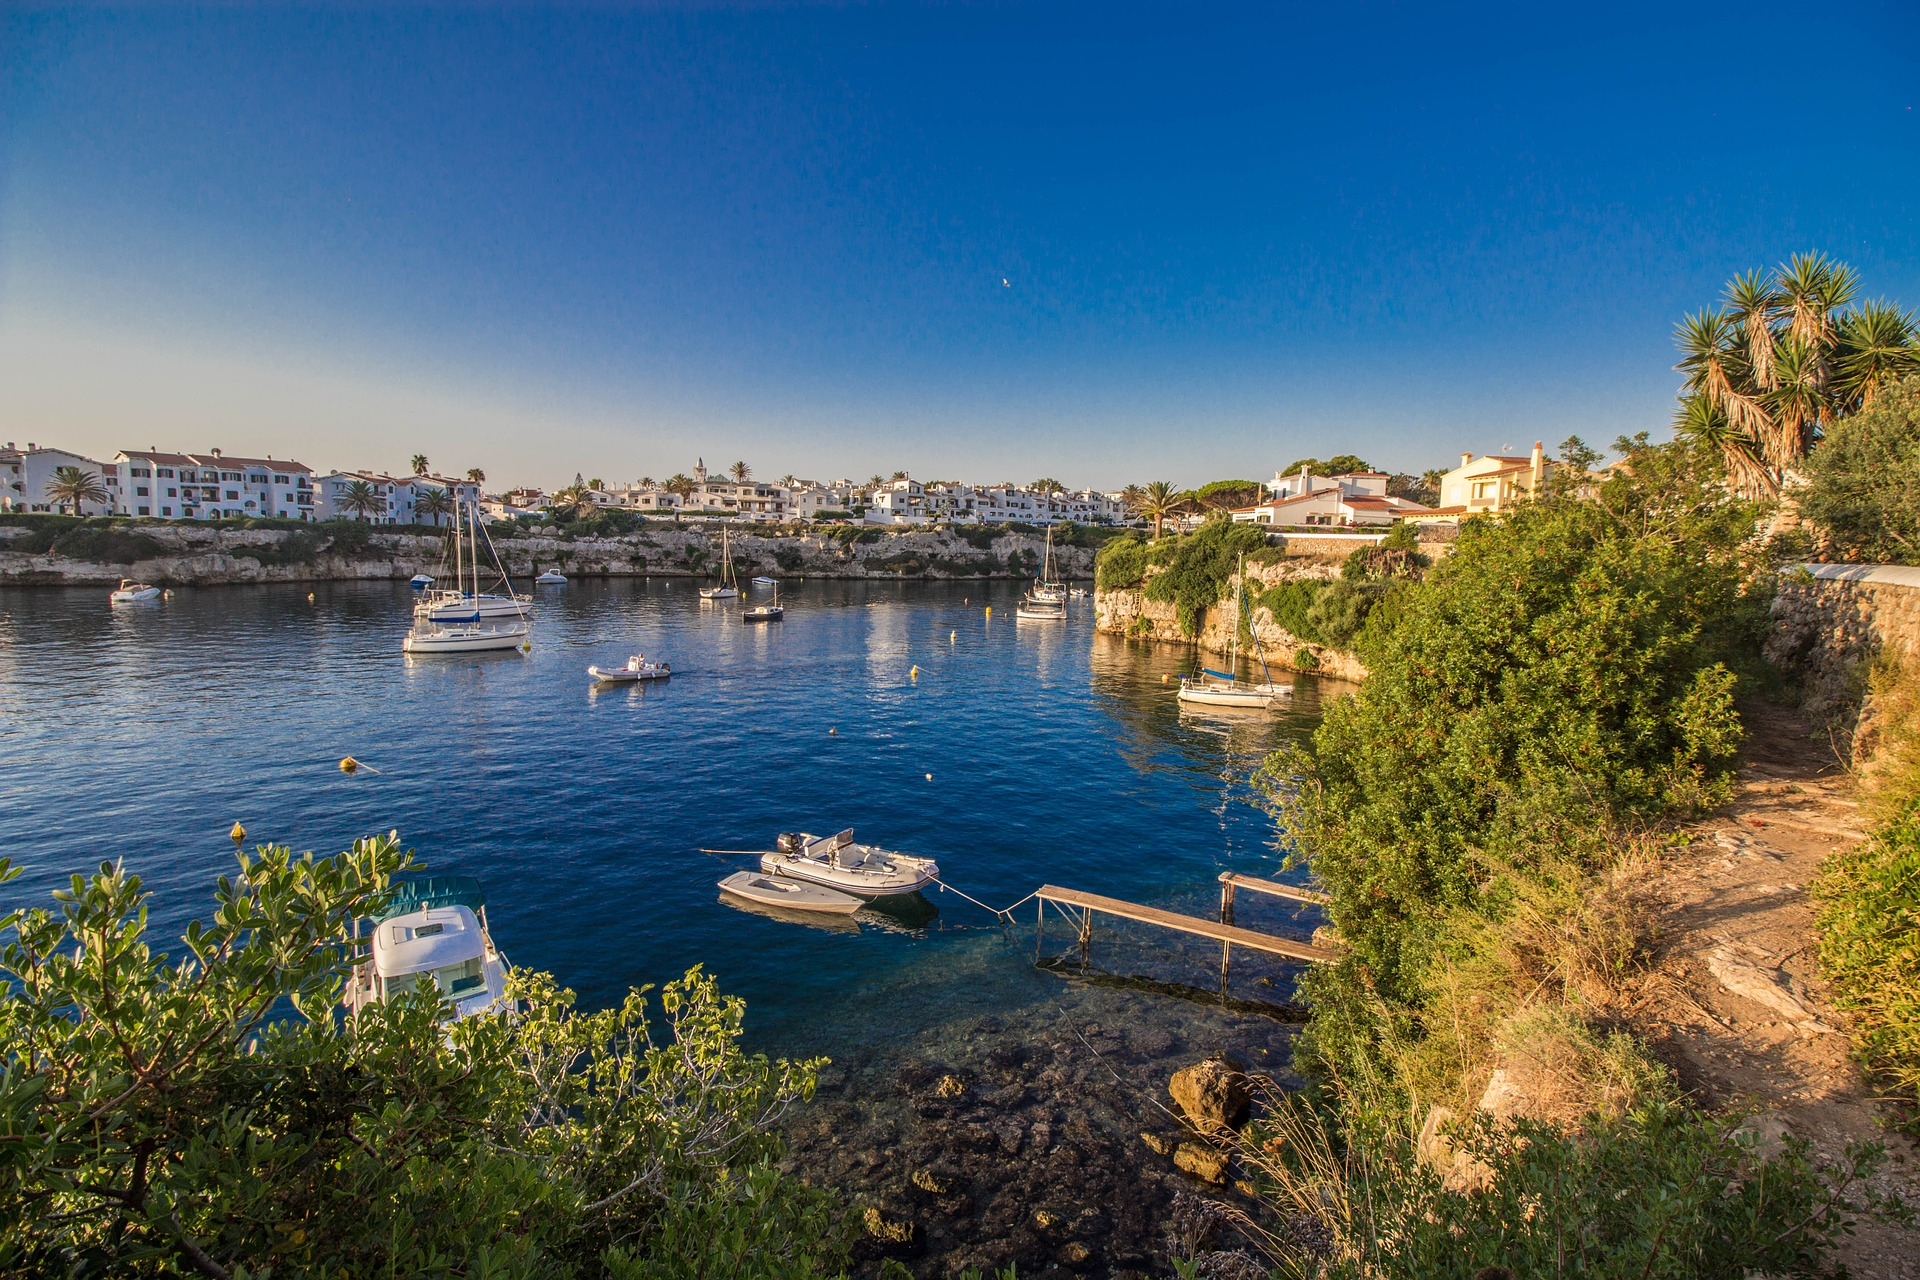 The Coast andCountryside of Minorca - An invigorating week of walking and sightseeing, with ambles amongst gentle undulating hills, walks along deserted beaches and hikes through a spectacular gorge.12 - 19 October 2018 from £1,075 per person.